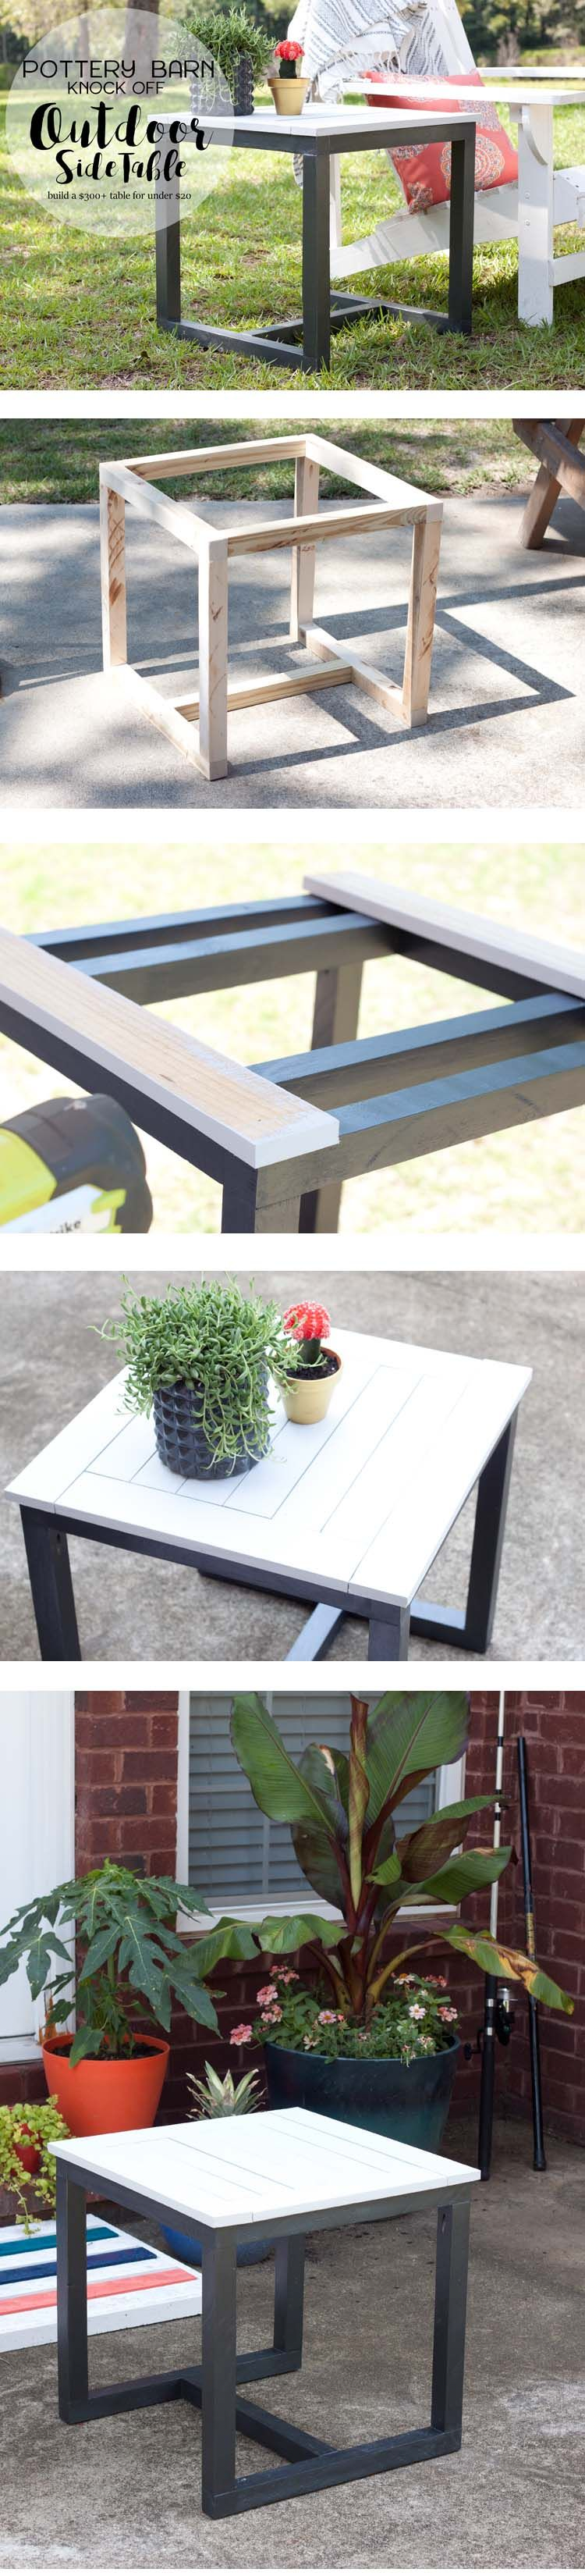 Diy Outdoor Side Table Pottery Barn Knockoff Diy Outdoor Furniture Wood Diy Outdoor Diy Projects